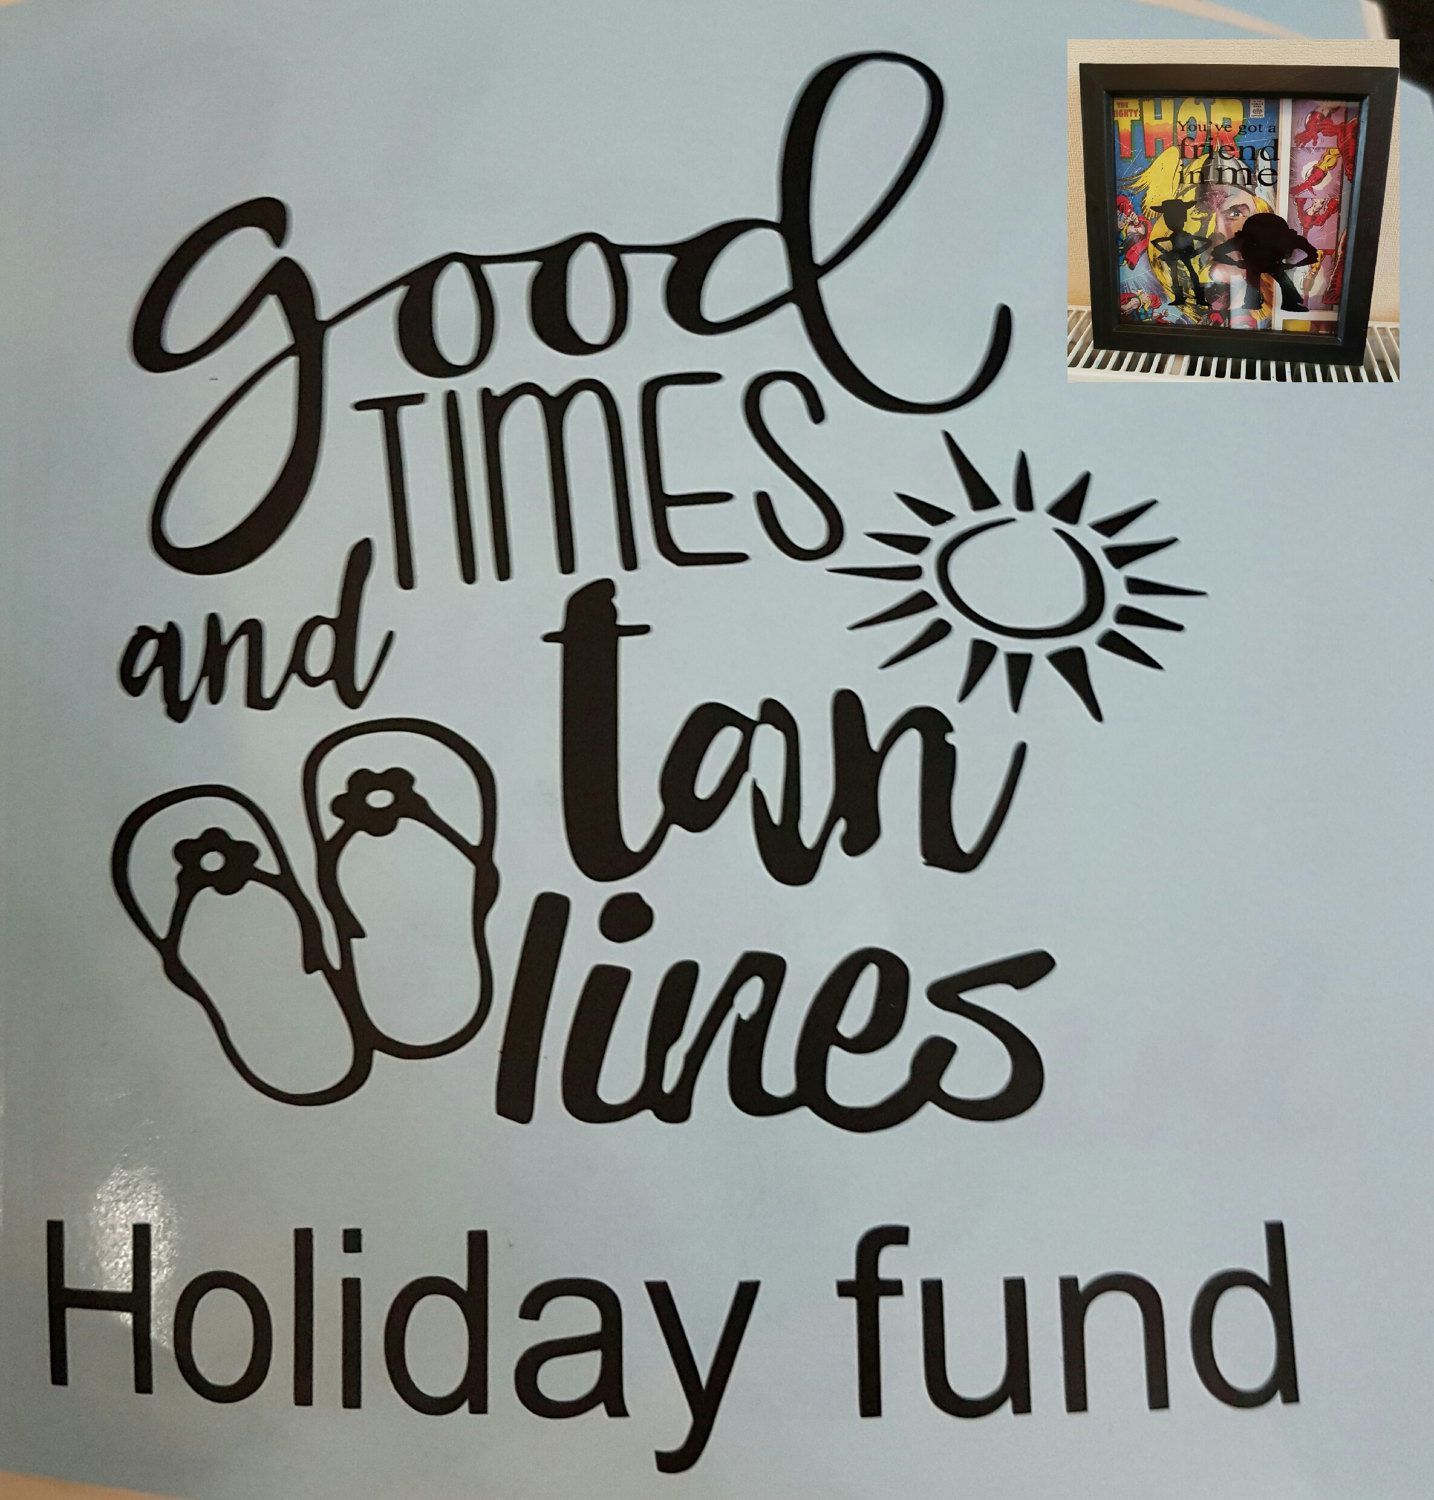 Vinyl sticker good times and tan lines holiday fund wording perfect for diy box frames etc by vinylqueen1981 on etsy